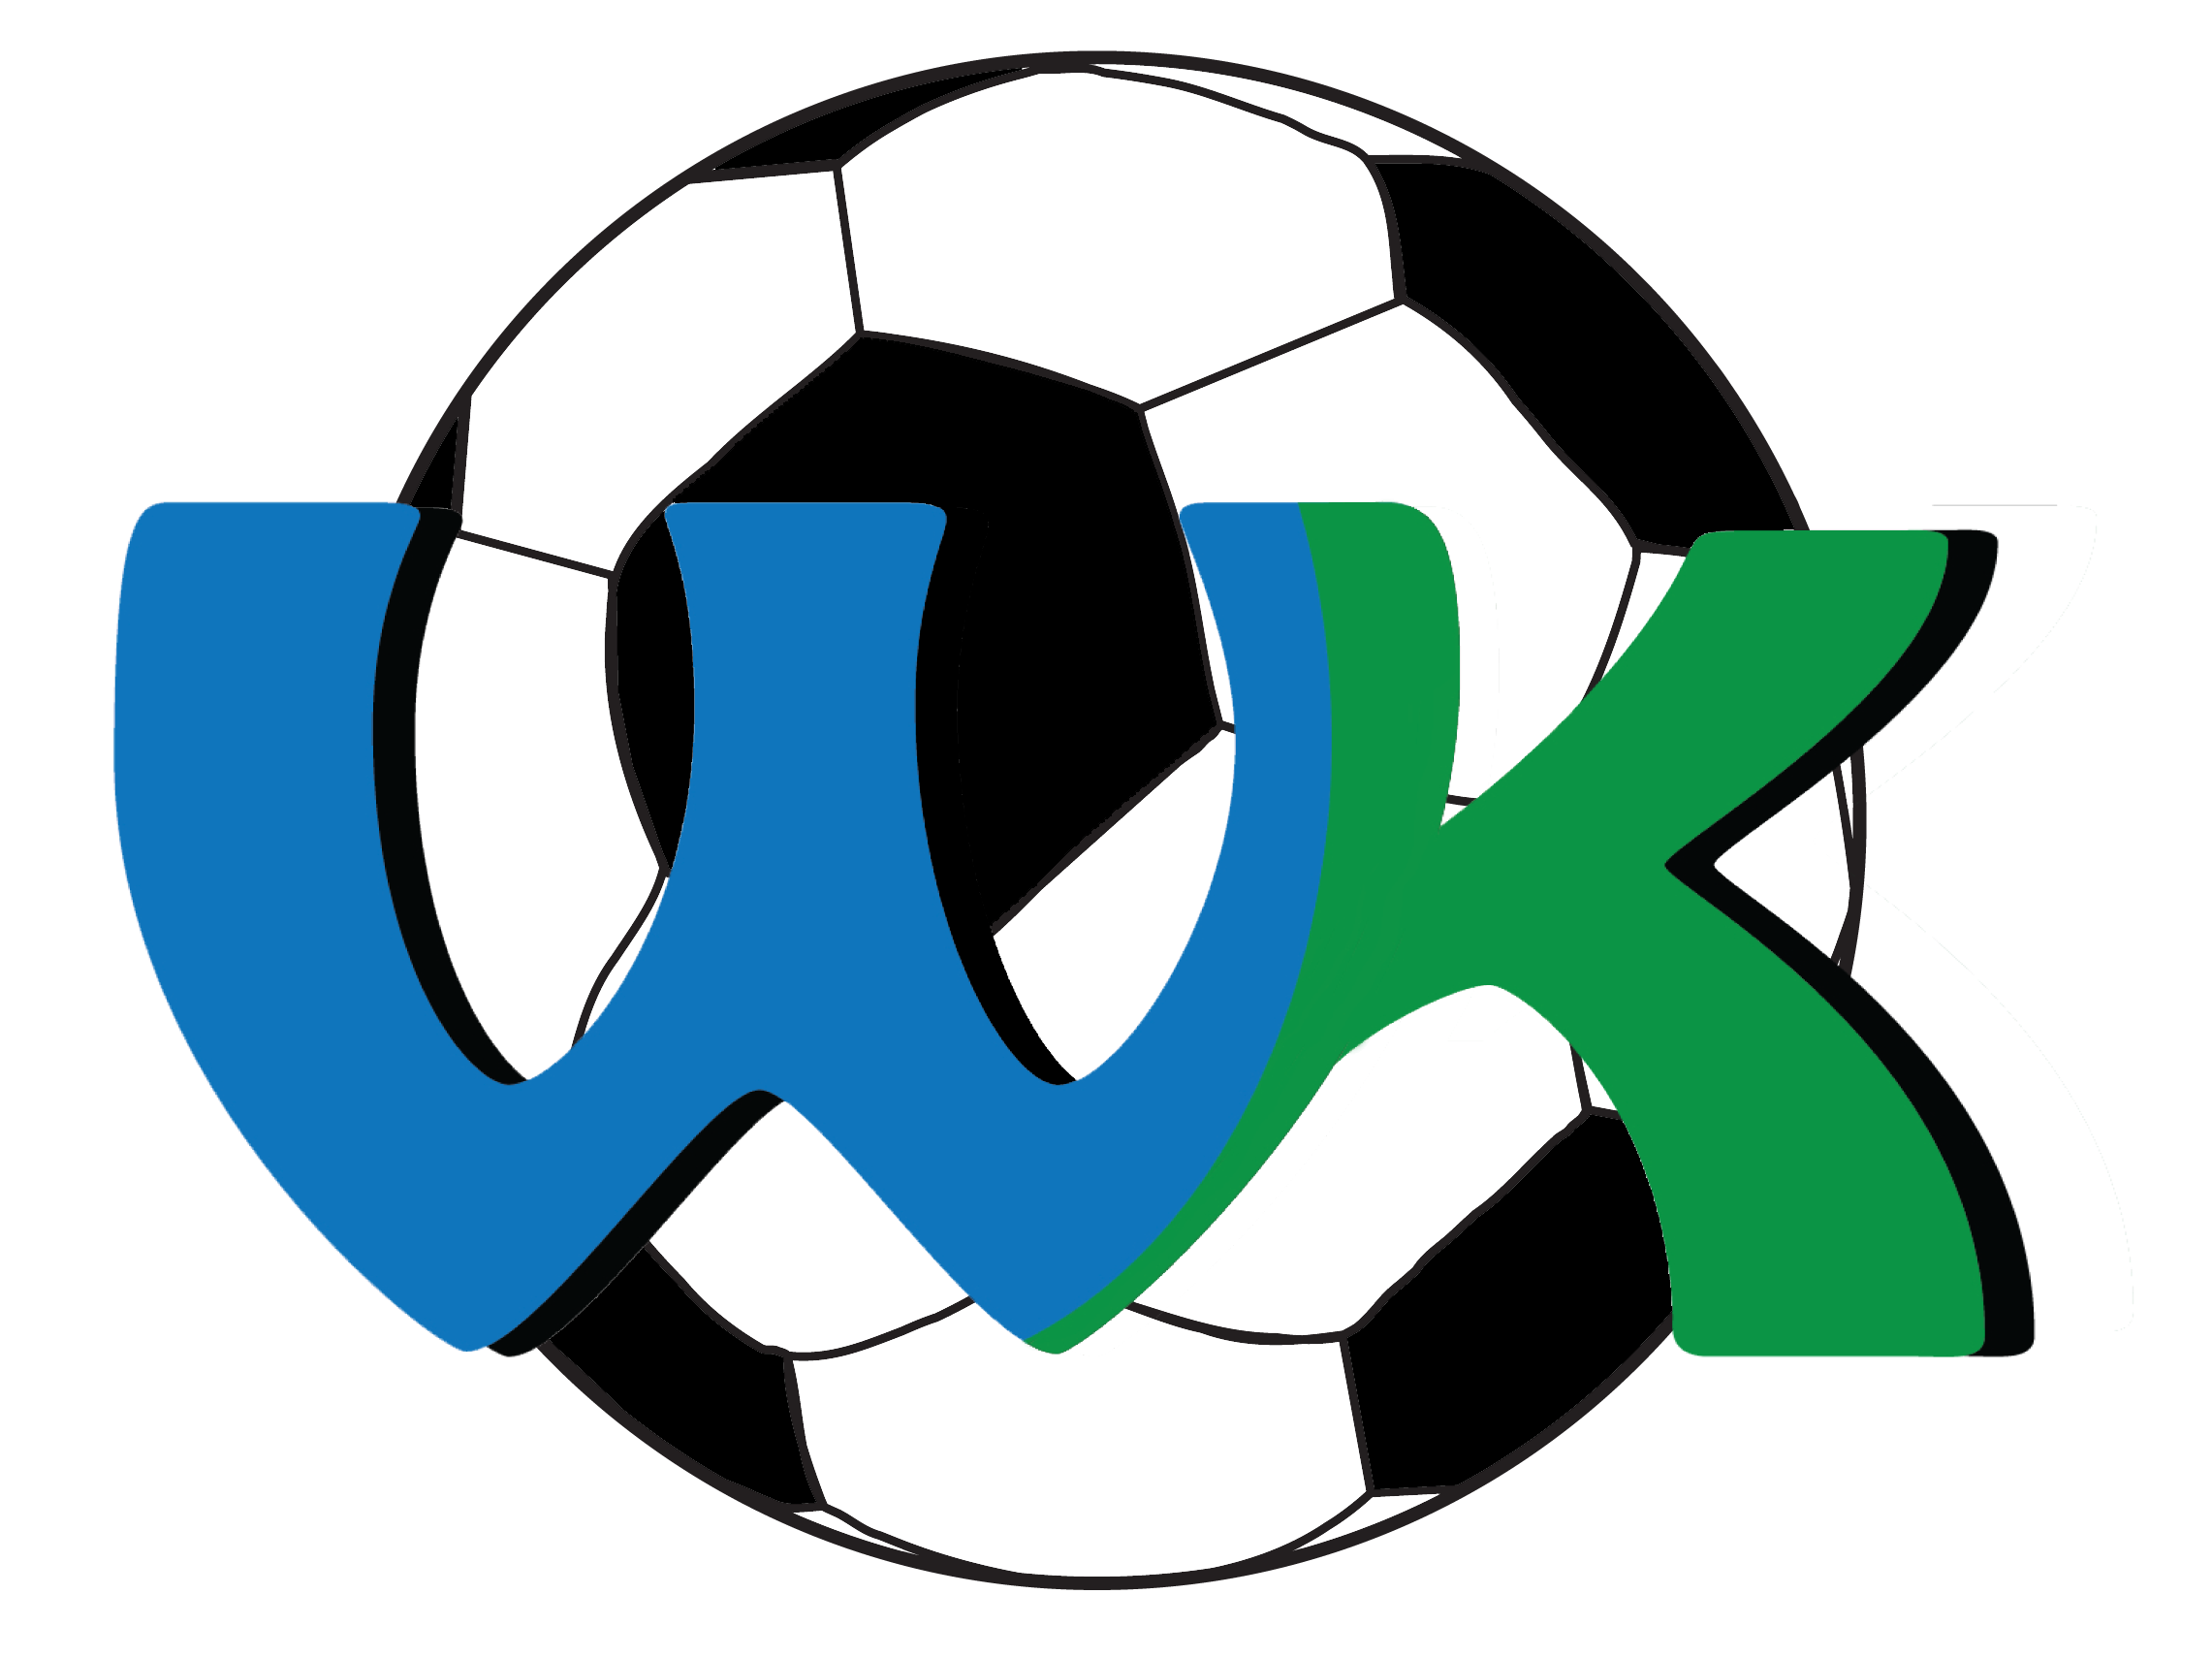 Volunteering clipart soccer. How to apply weikem